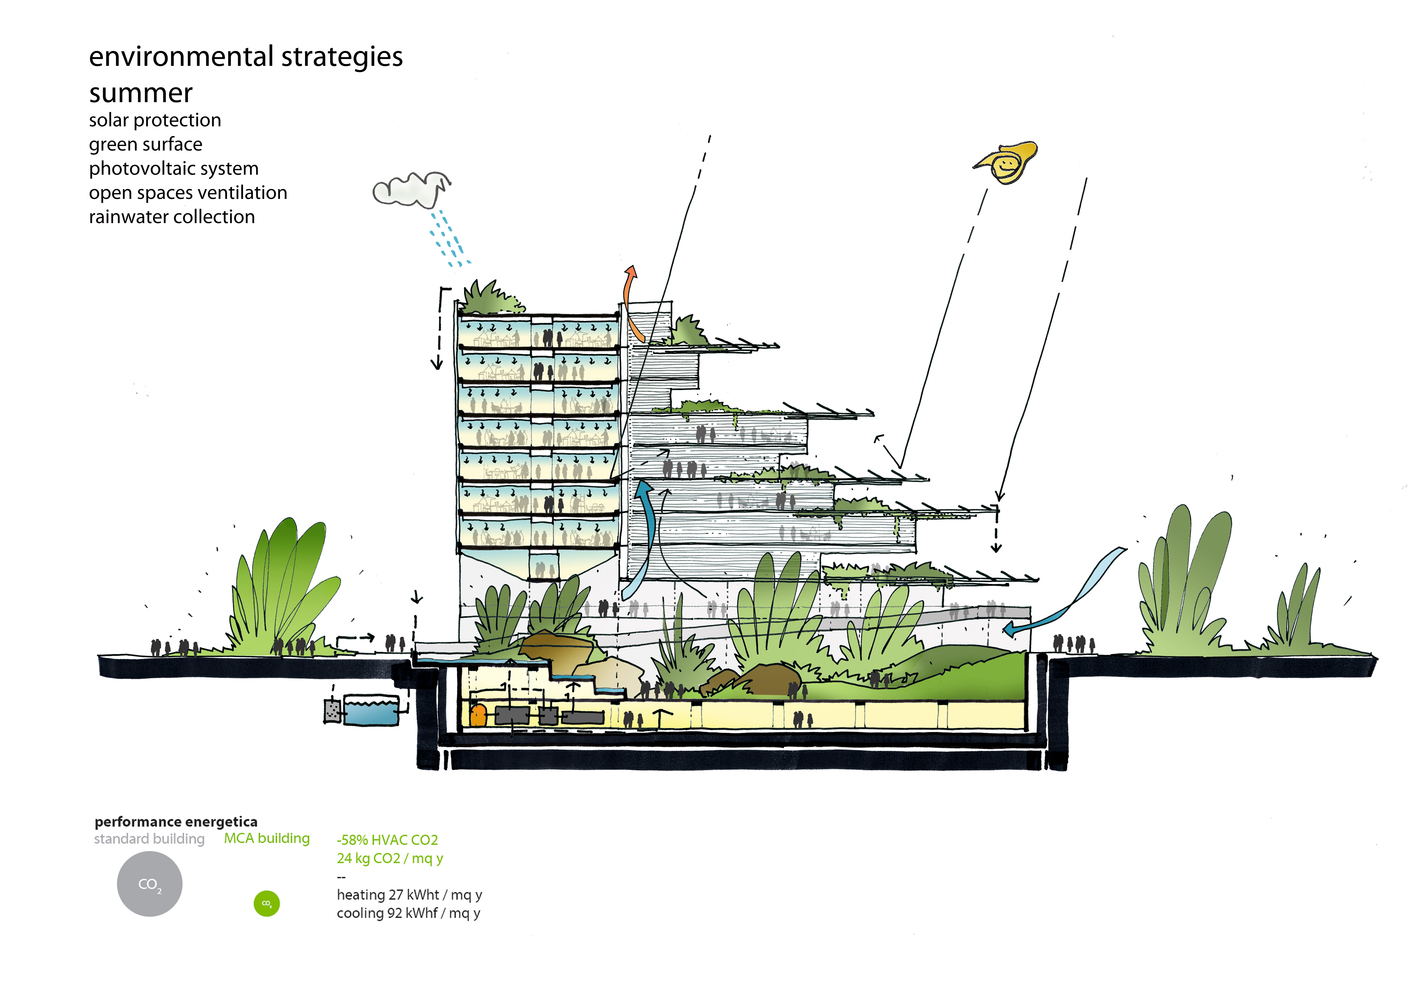 sino italian ecological and energy efficient building summer diagram [ 1414 x 1000 Pixel ]